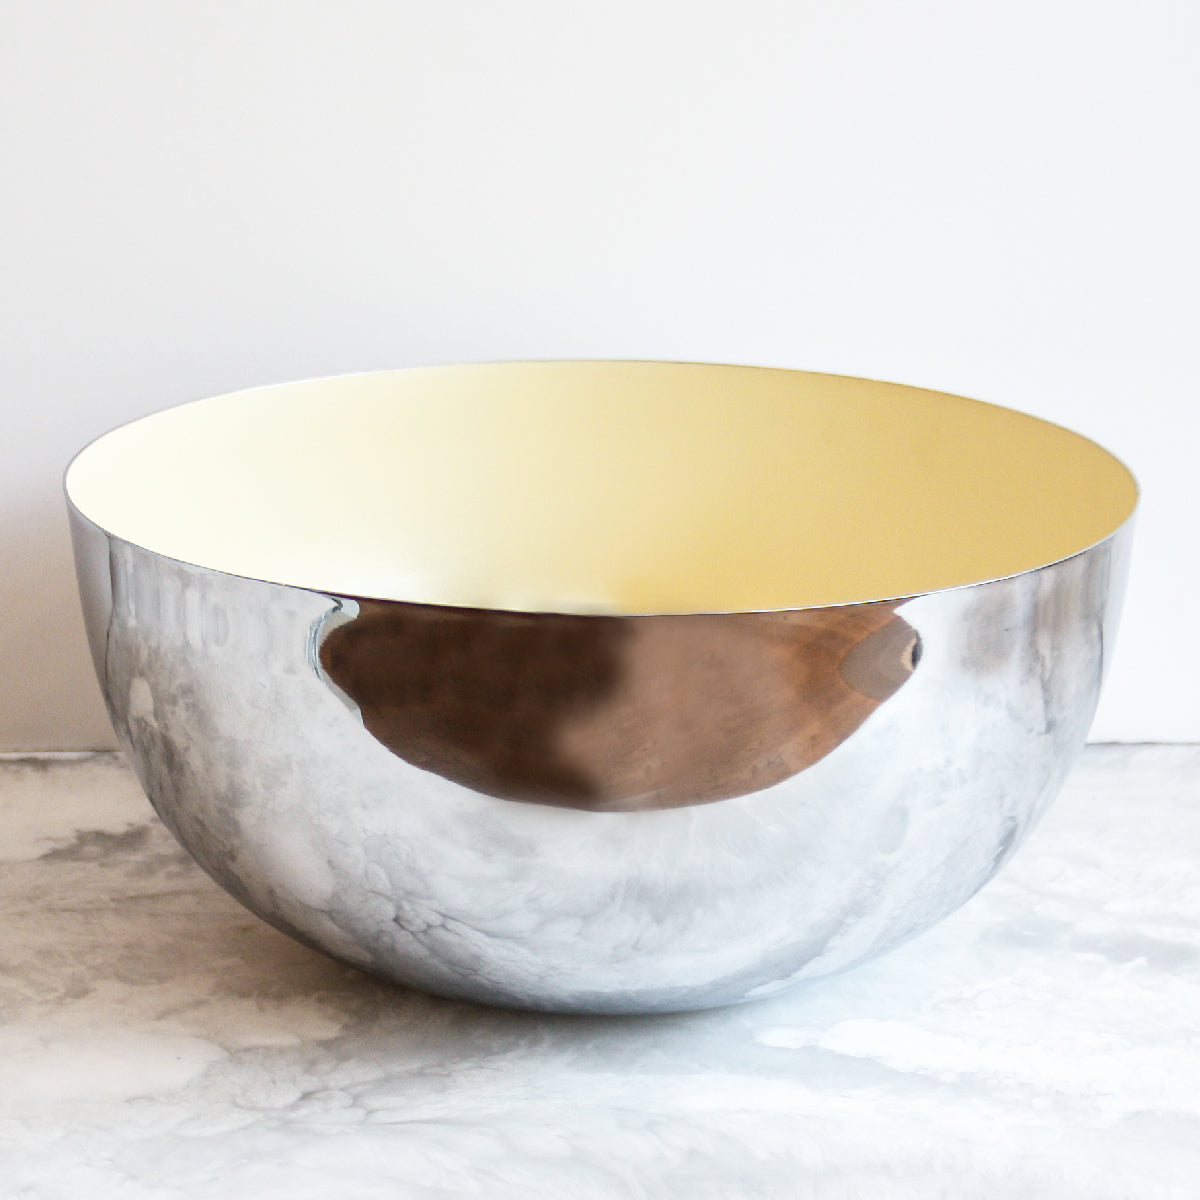 Chrome and Yellow Bowl by Louise Roe Copenhagen